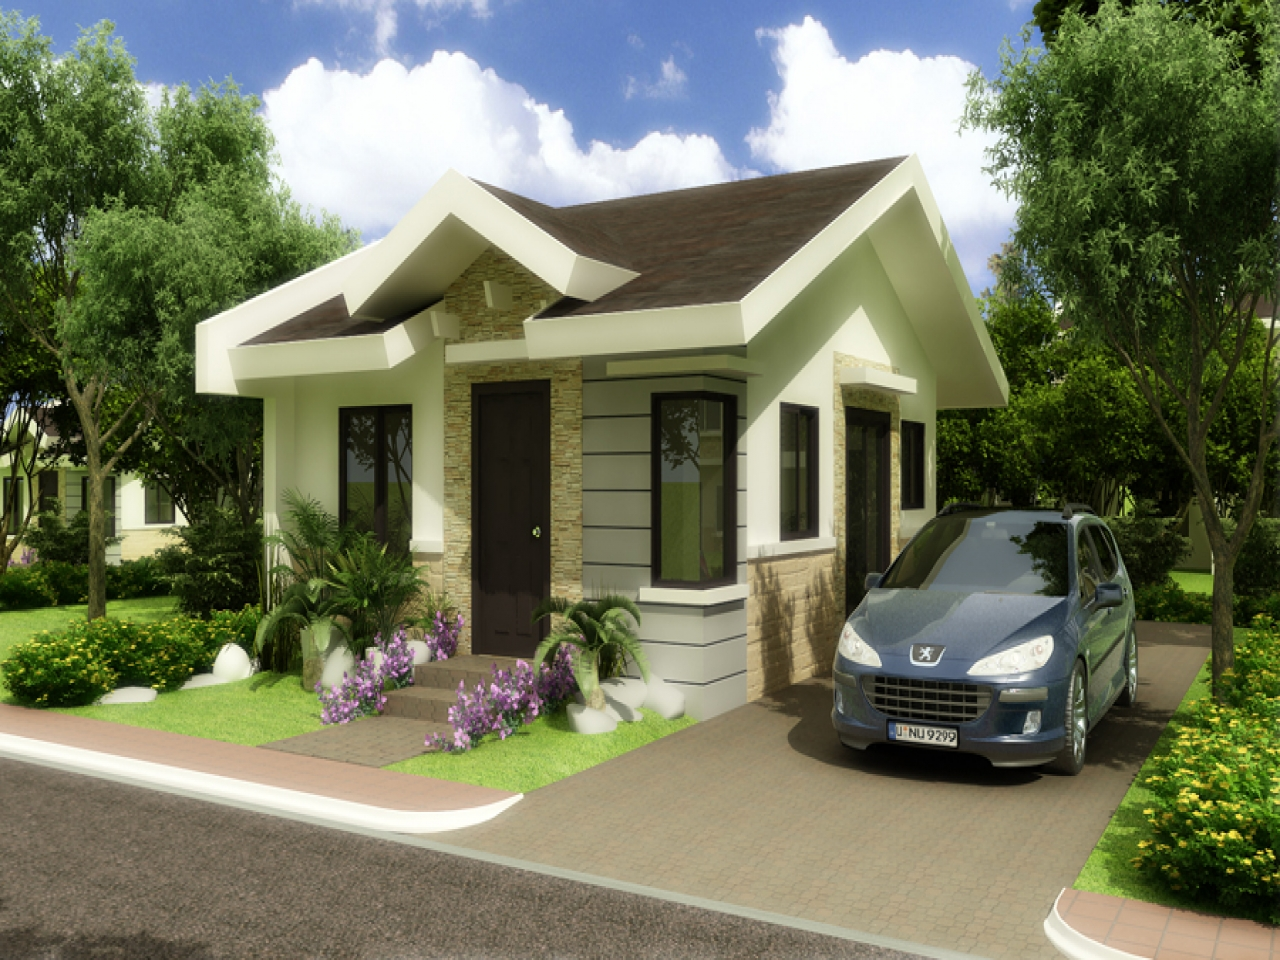 philippines bungalow house floor plan bungalow house plans philippines design lrg 42b284492b3ad275 - 38+ Modern Small House Design In Philippines  Images